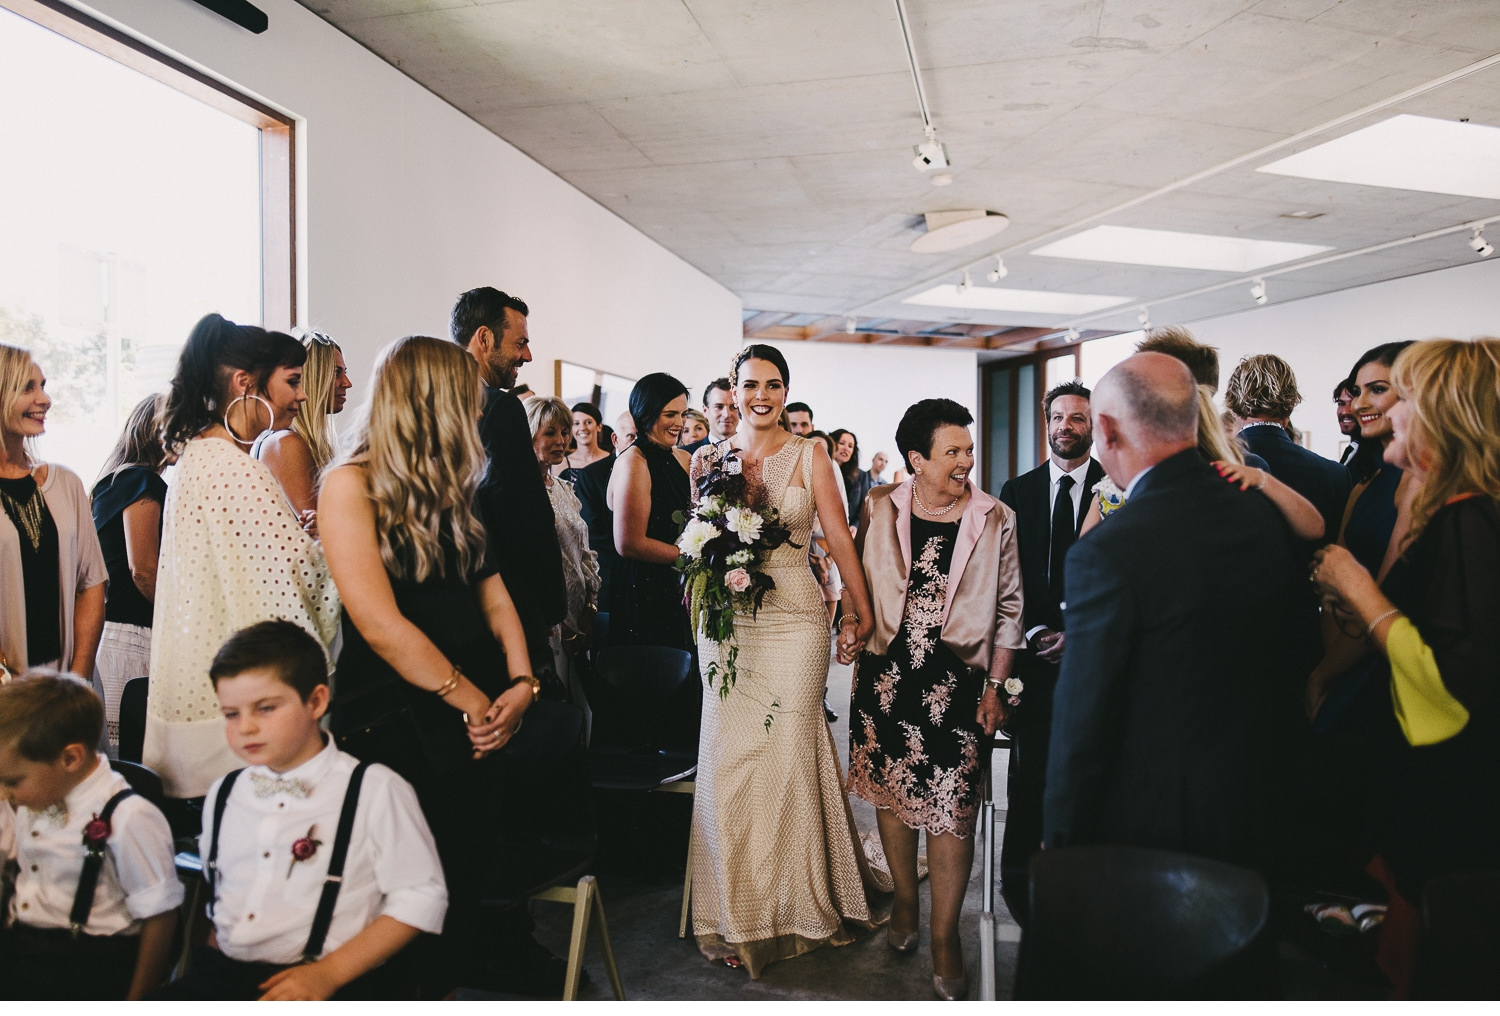 Morgan Roberts Photography_Wedding_nishi gallery hotel hotel_Jay and Lucy 1681.jpg